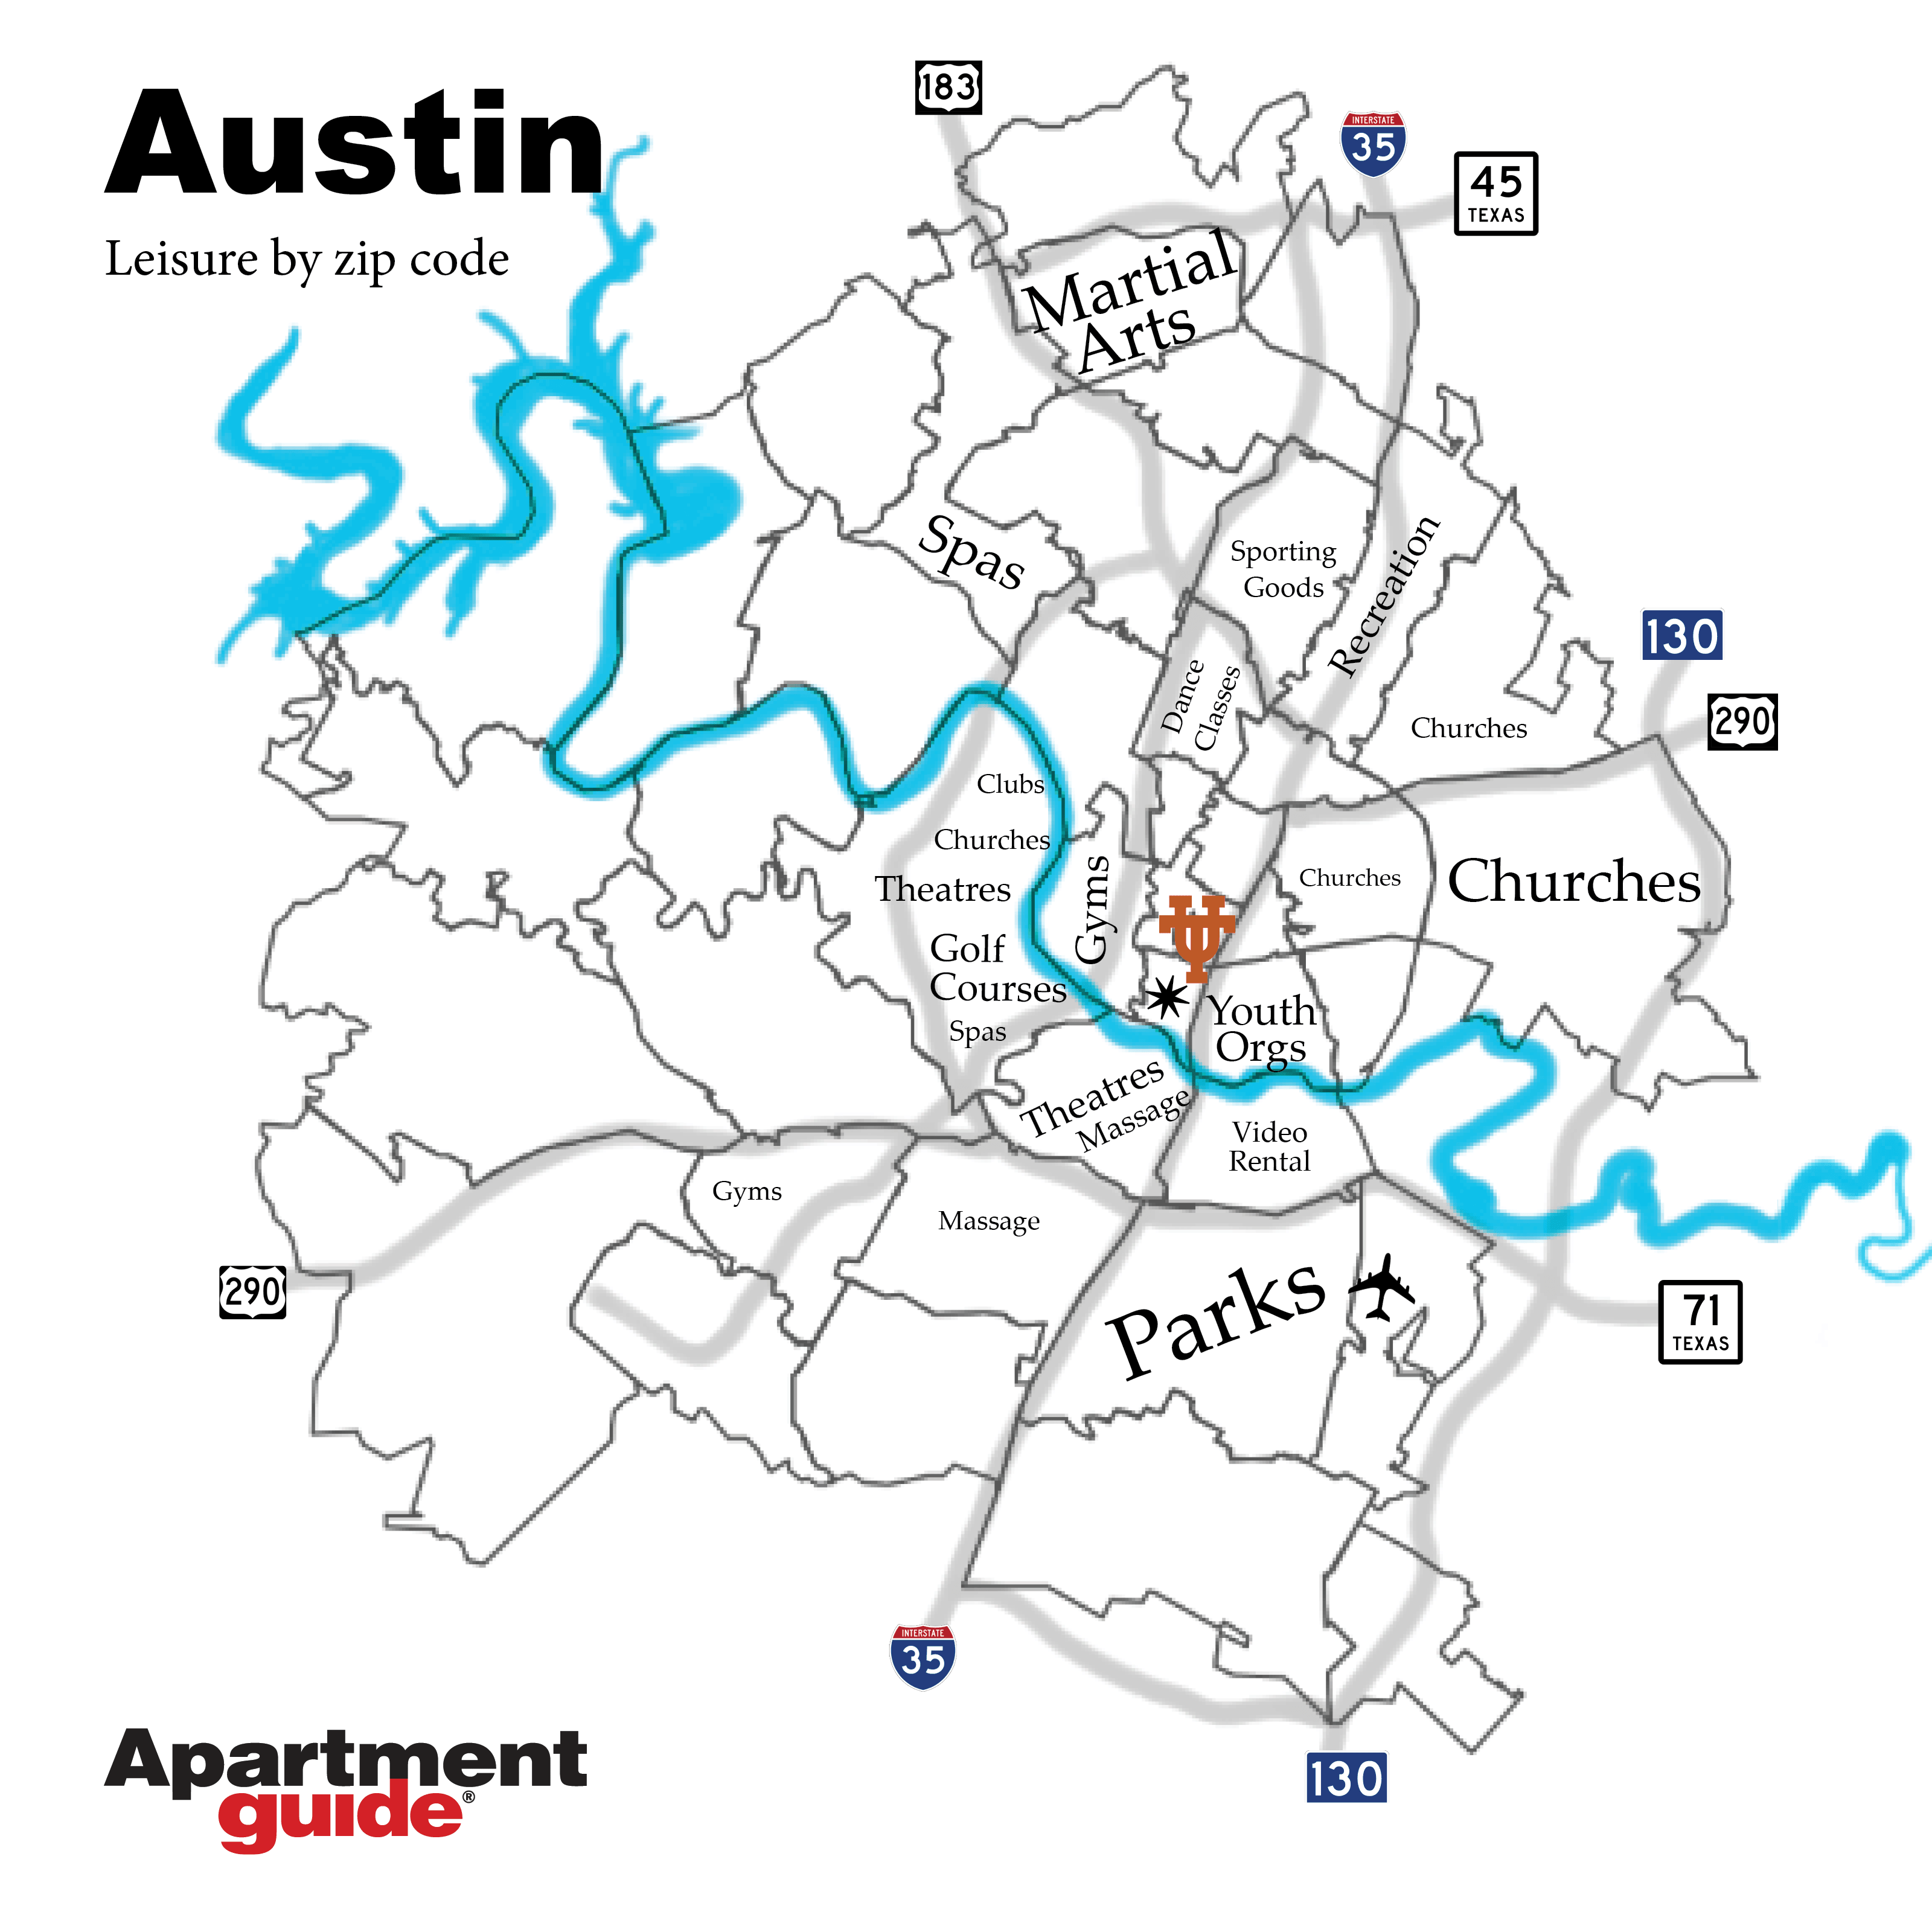 Austin map by most popular leisure types